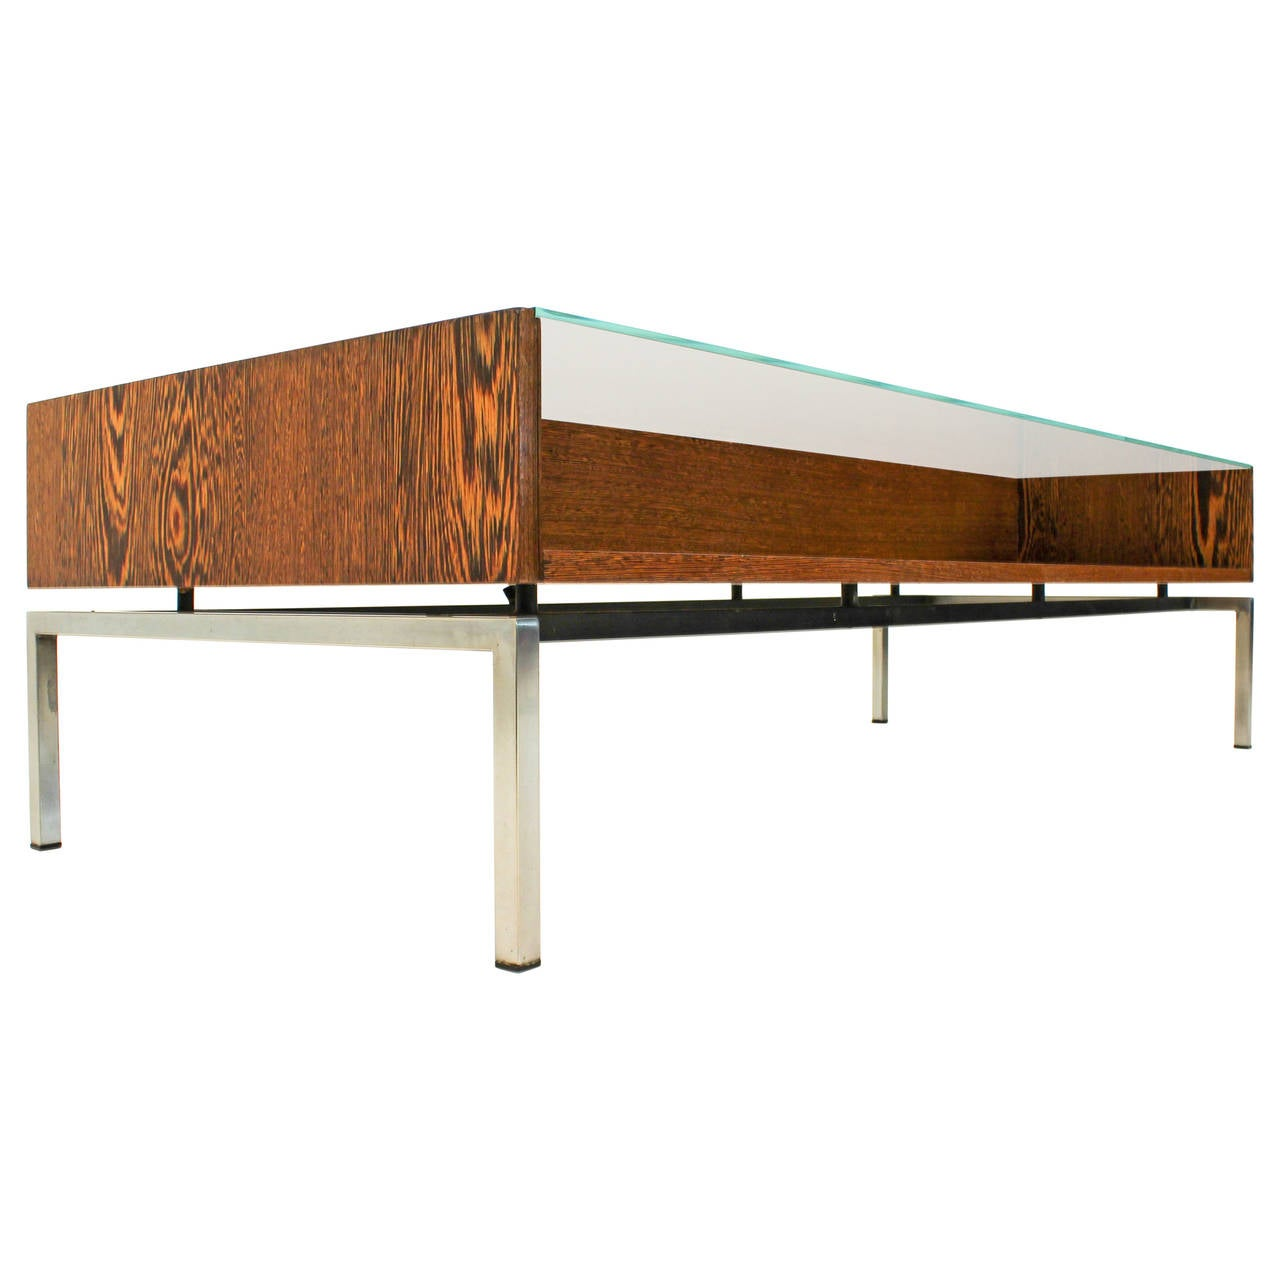 Stylish mid century modern coffee table with glass top 1960s at 1stdibs Mid century coffee tables